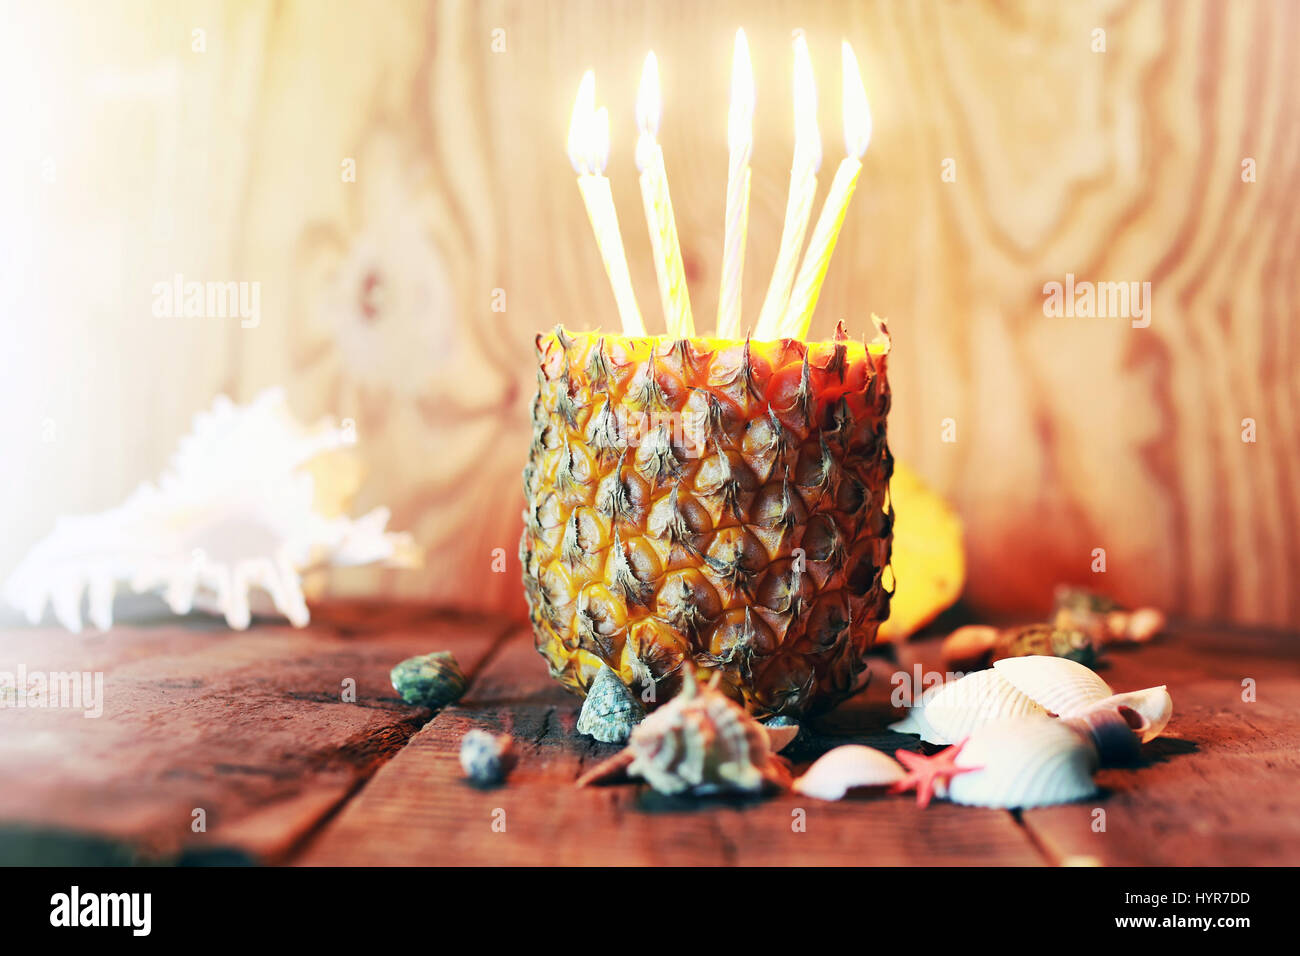 pineapple with candles - Stock Image